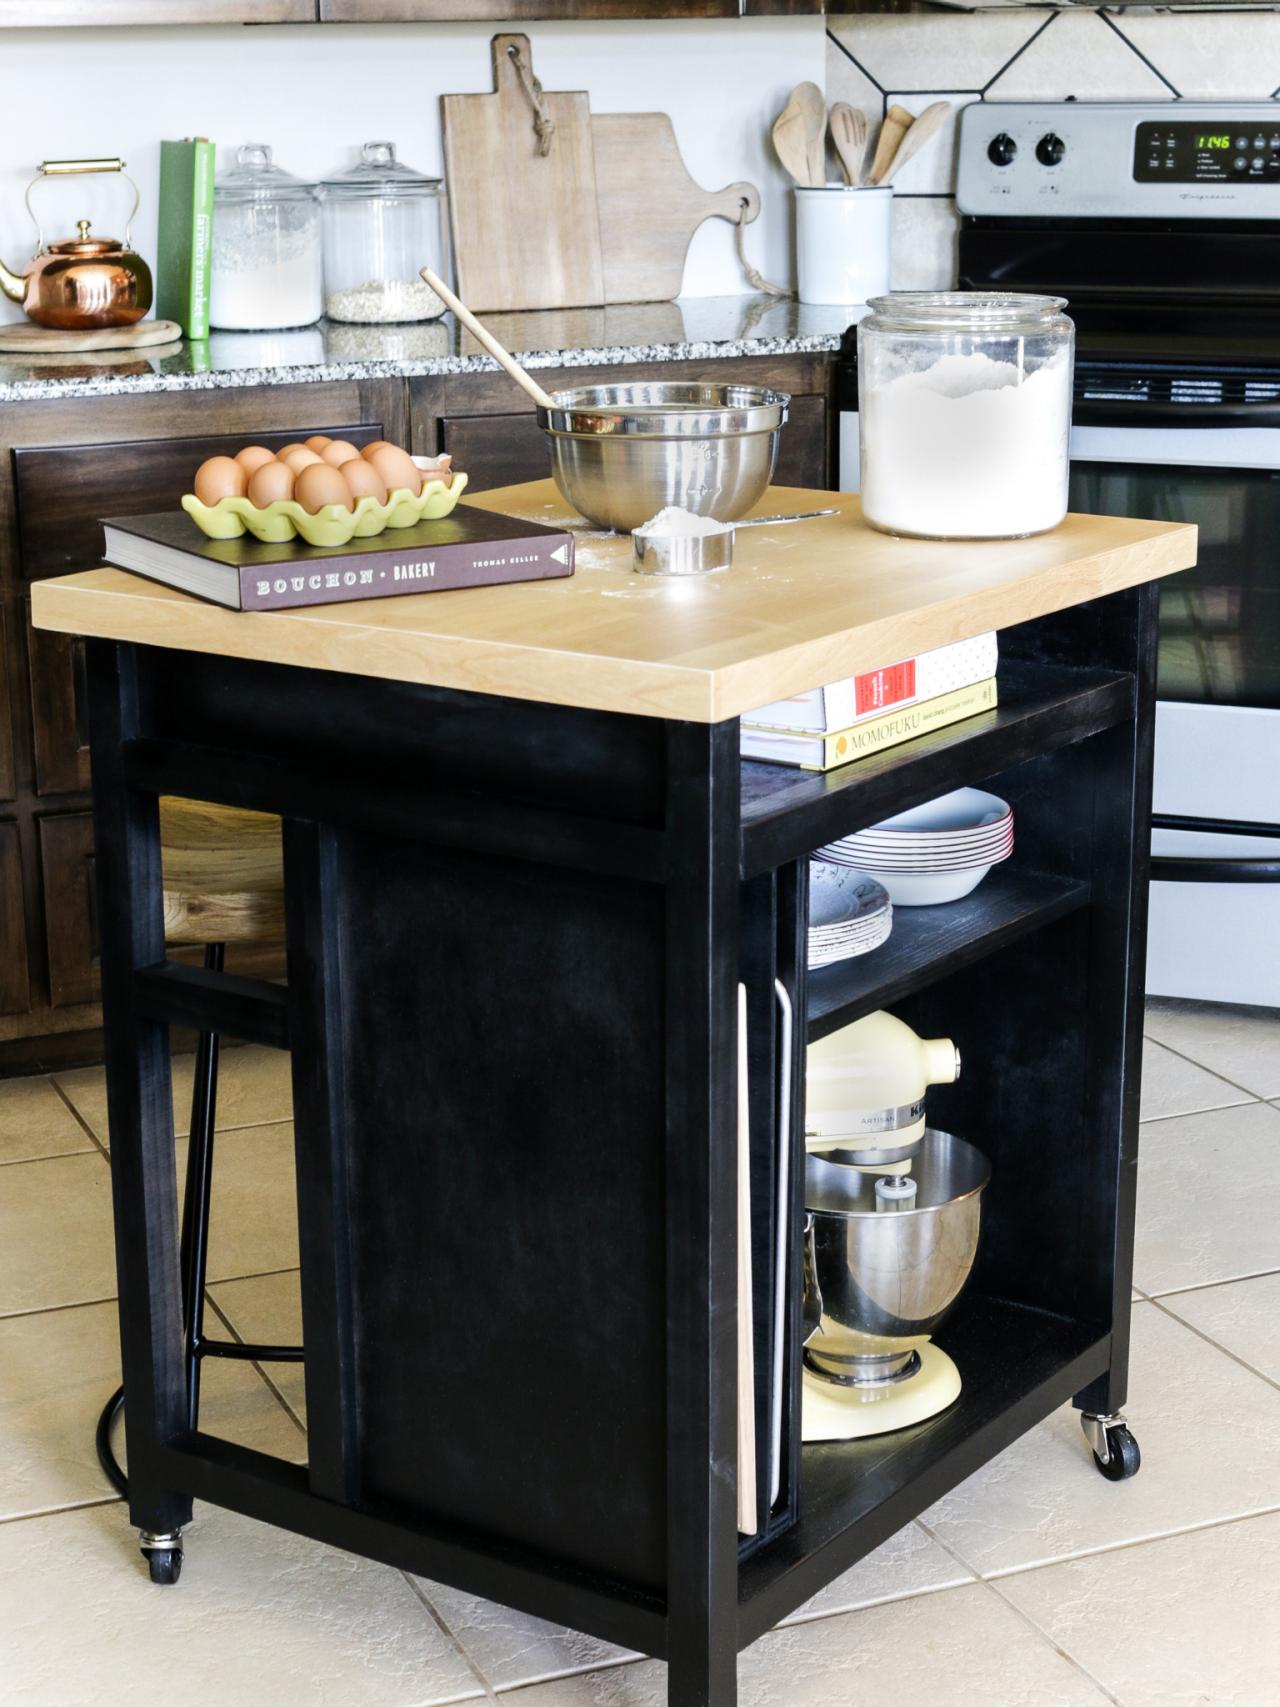 kitchen islands wheels pinterest - photo #33